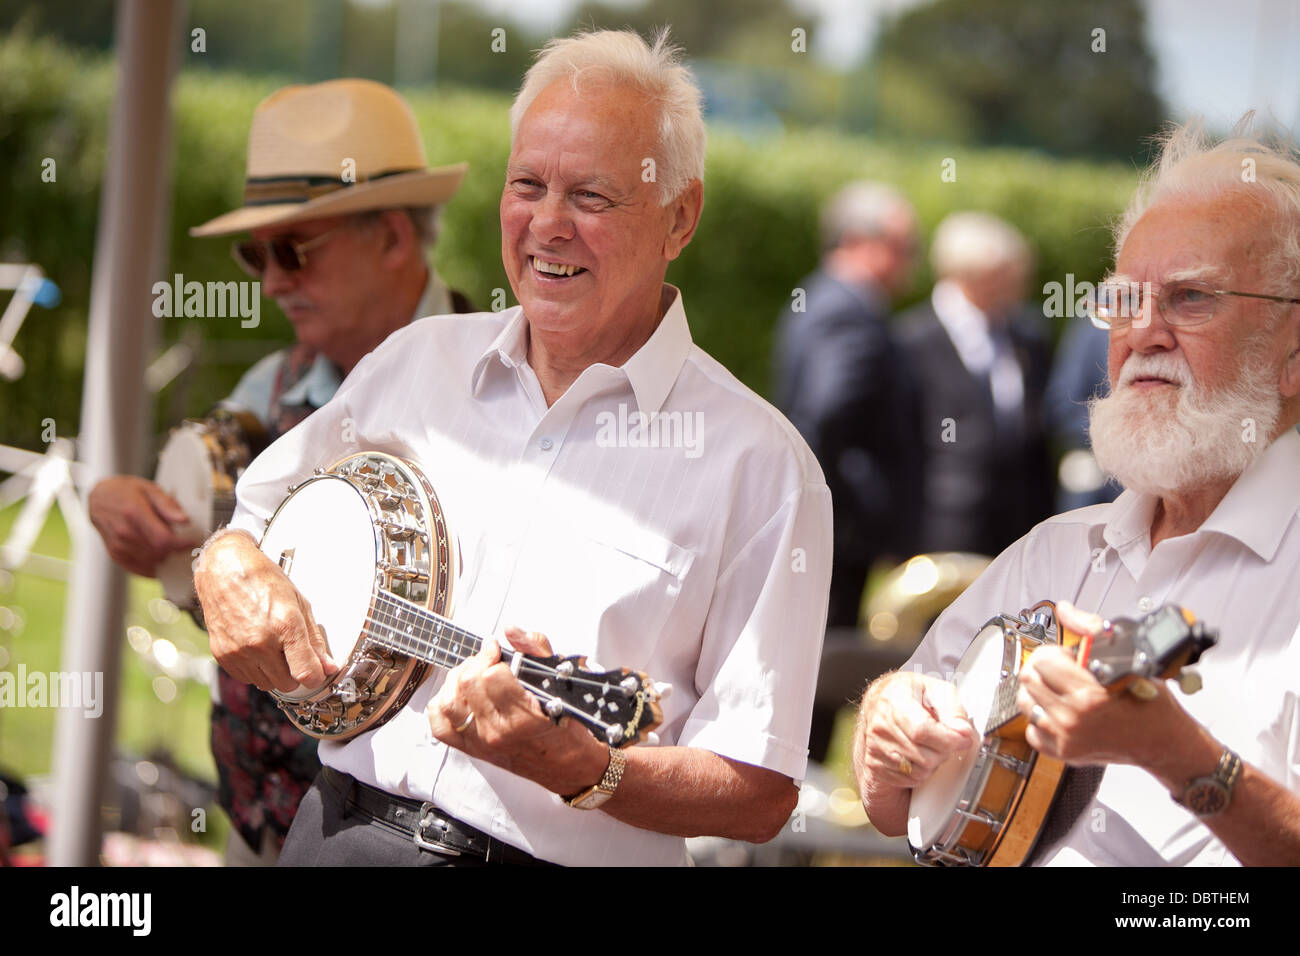 Newton-le-Willows Town Show at Mesnes Park . A member of the George Formby society performs - Stock Image